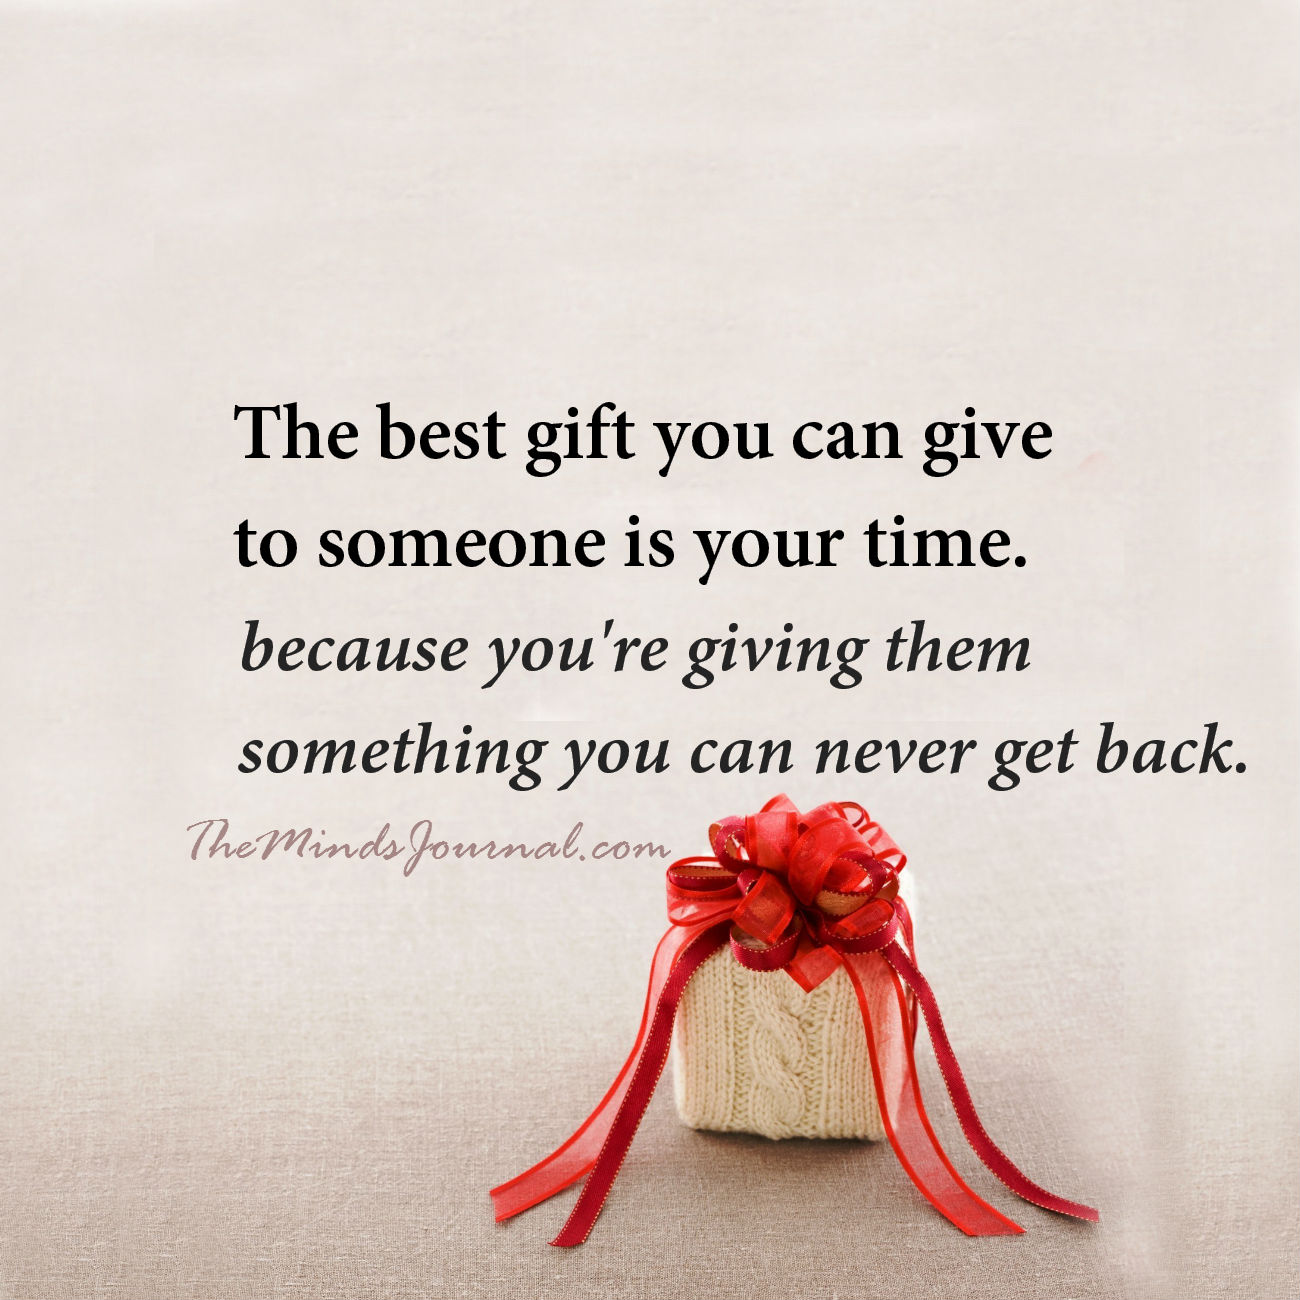 The best gift you can give someone